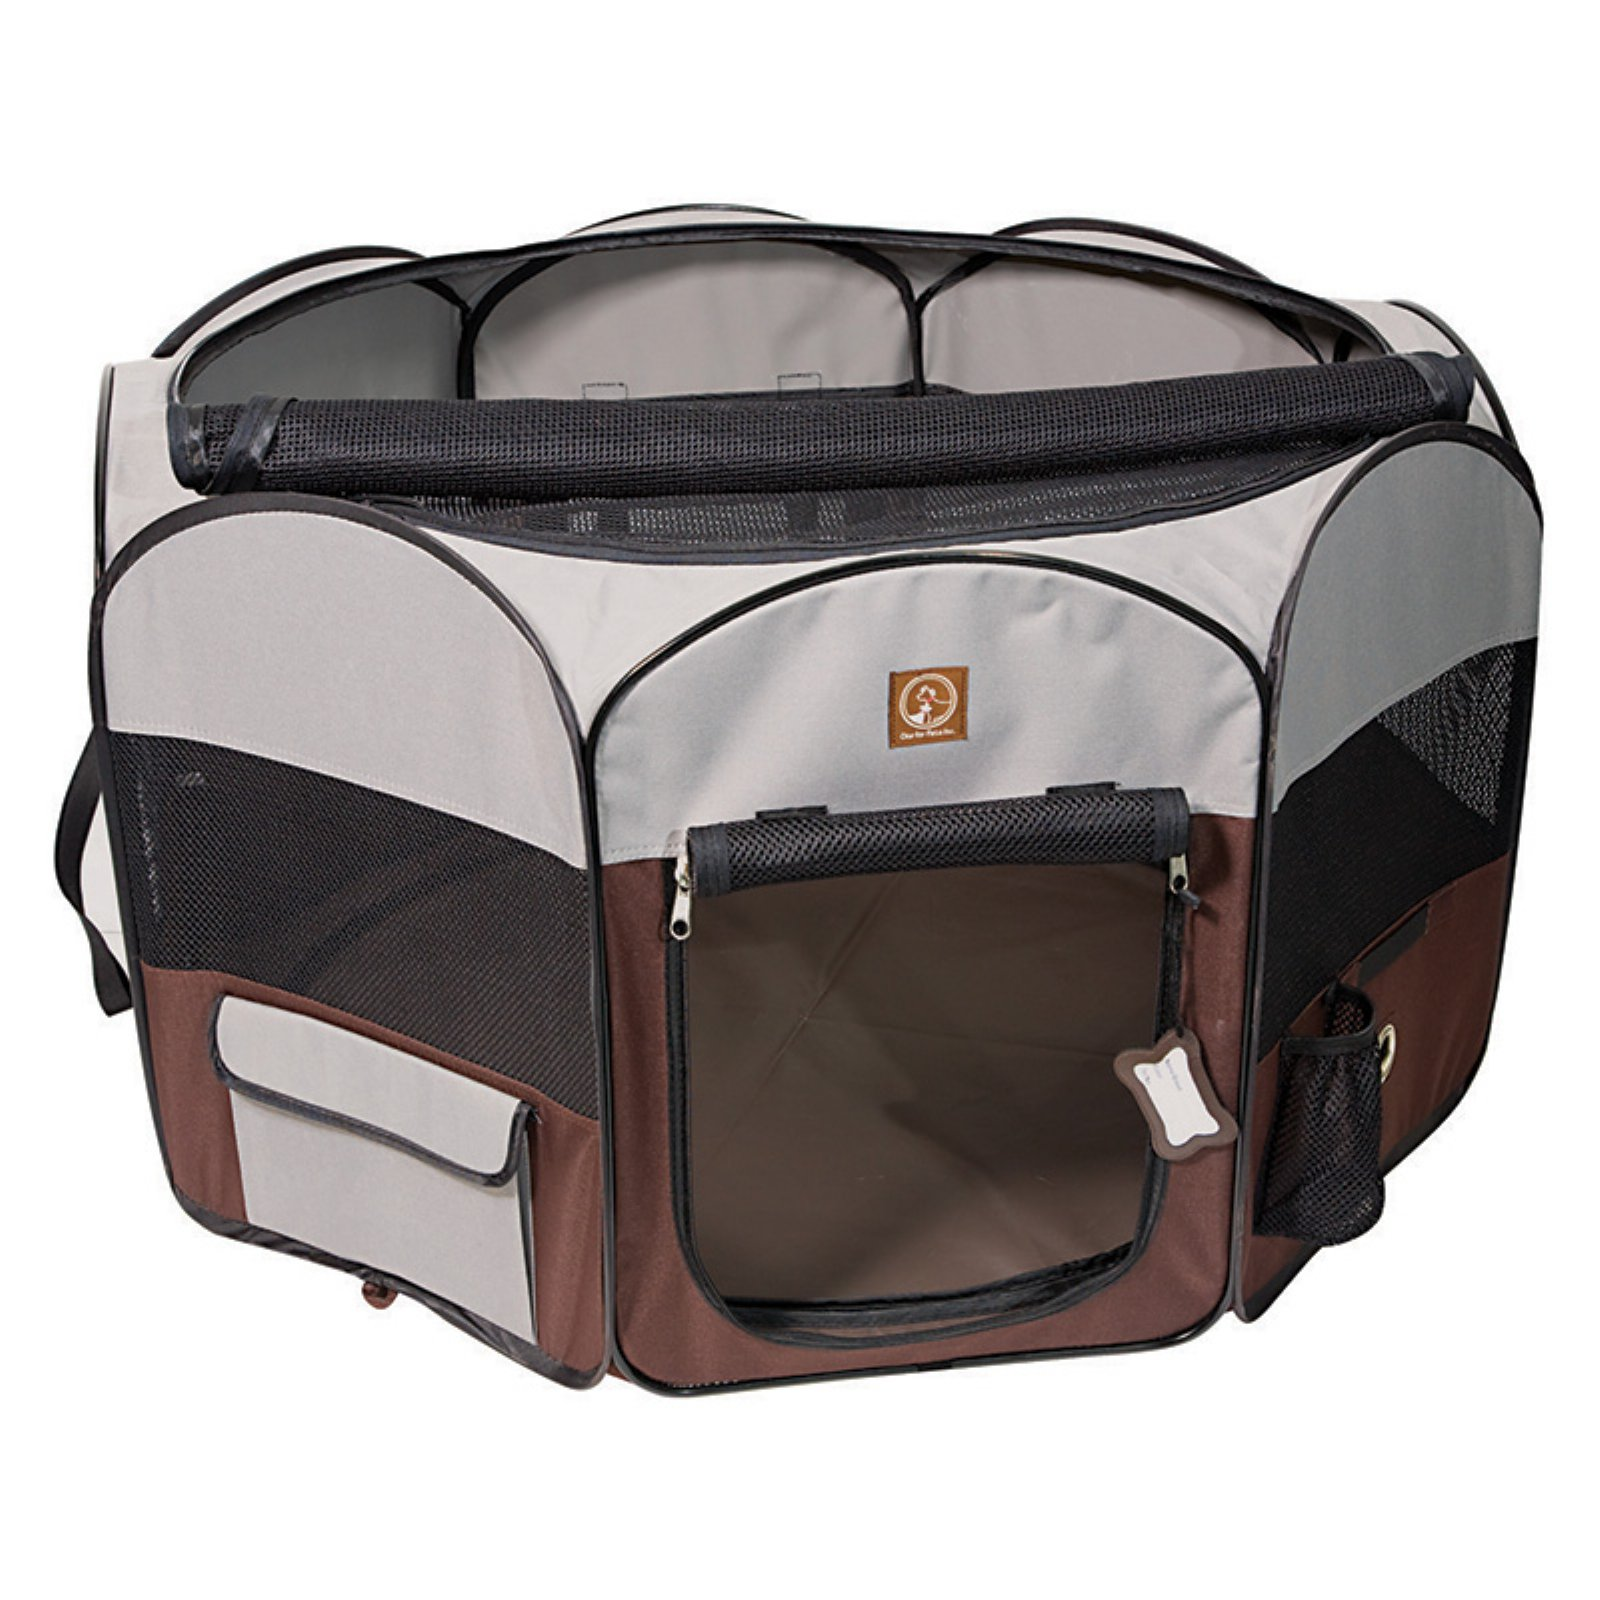 One For Pets Fabric Portable Playpen